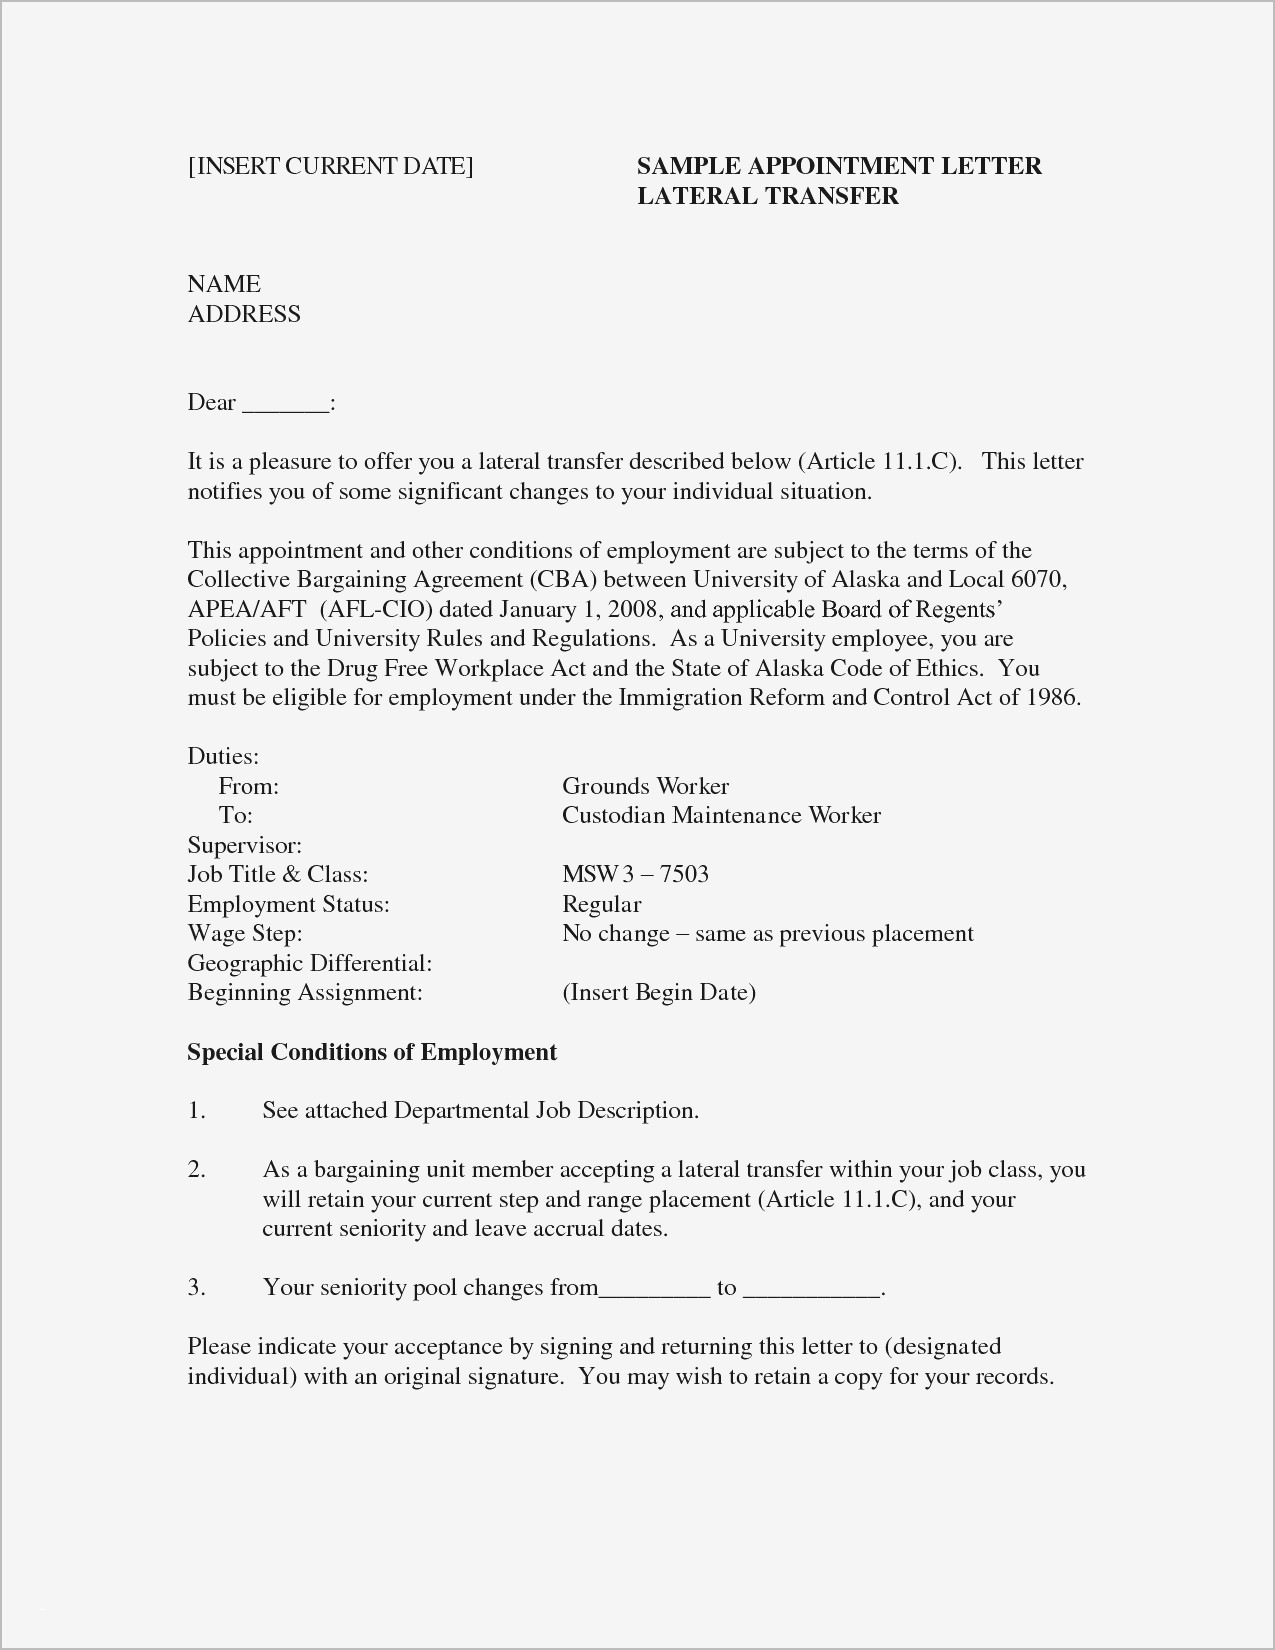 Work Reference Letter Template - Unique Job Reference Letter Template